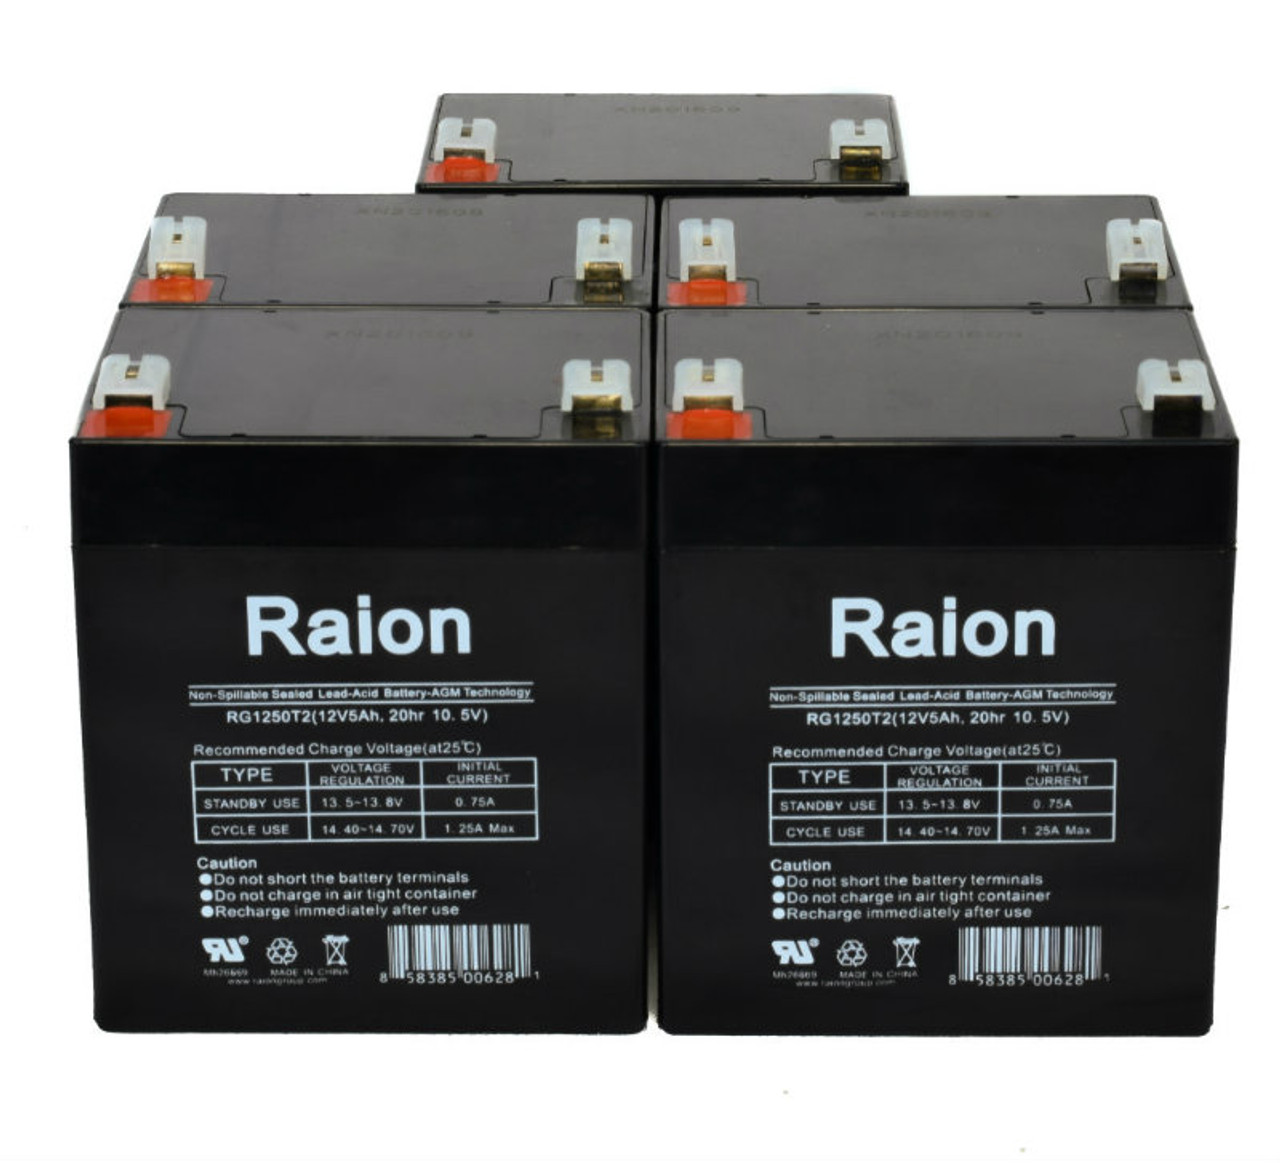 Raion Power RG1250T1 Replacement Battery for Rhino SLA4.5-12 - (5 Pack)